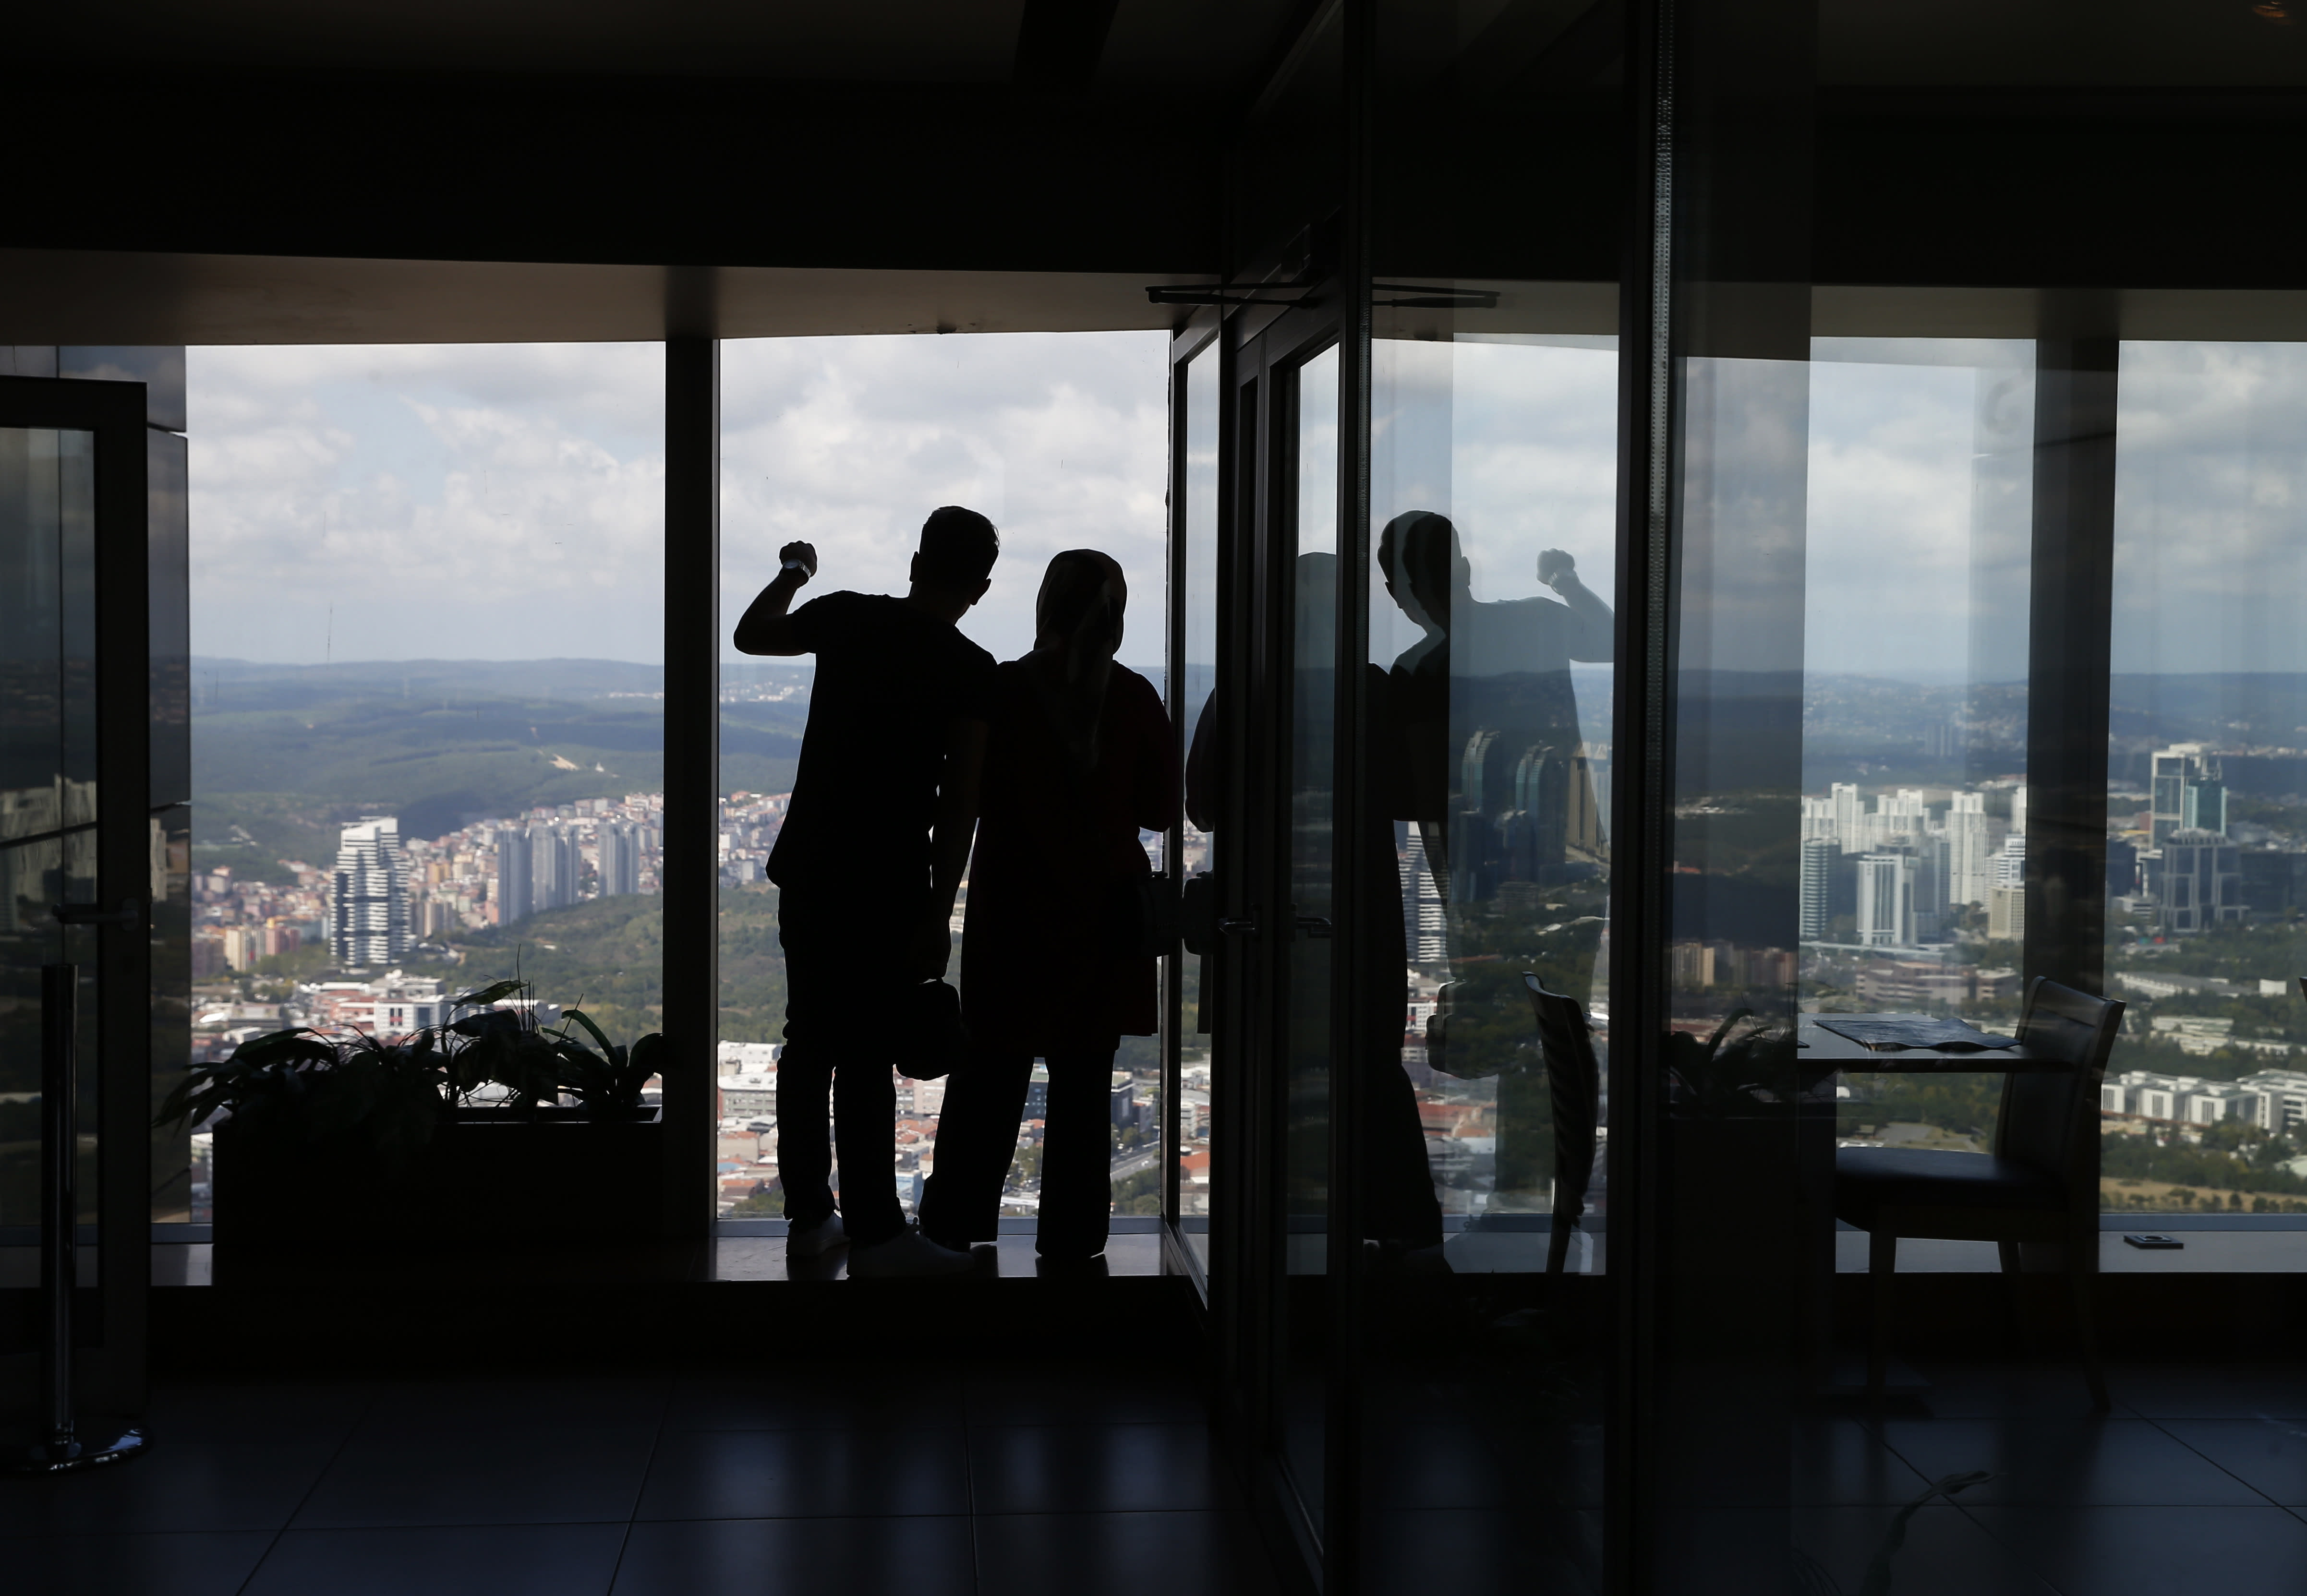 Tourists enjoy the views from a high-rise building's observation deck in Istanbul, Thursday, Aug. 16, 2018. Beset by a weak currency and tension with the United States, Turkey is reaching out to Europe in an attempt to shore up relations with major trading partners despite years of testy rhetoric and a stalled bid for EU membership. The overtures by Turkish President Recep Tayyip Erdogan, who has harshly criticized Germany and other European nations in the past, are part of a diplomatic campaign to capitalize on international unease over U.S. President Donald Trump and American tariff disputes. (AP Photo/Lefteris Pitarakis)